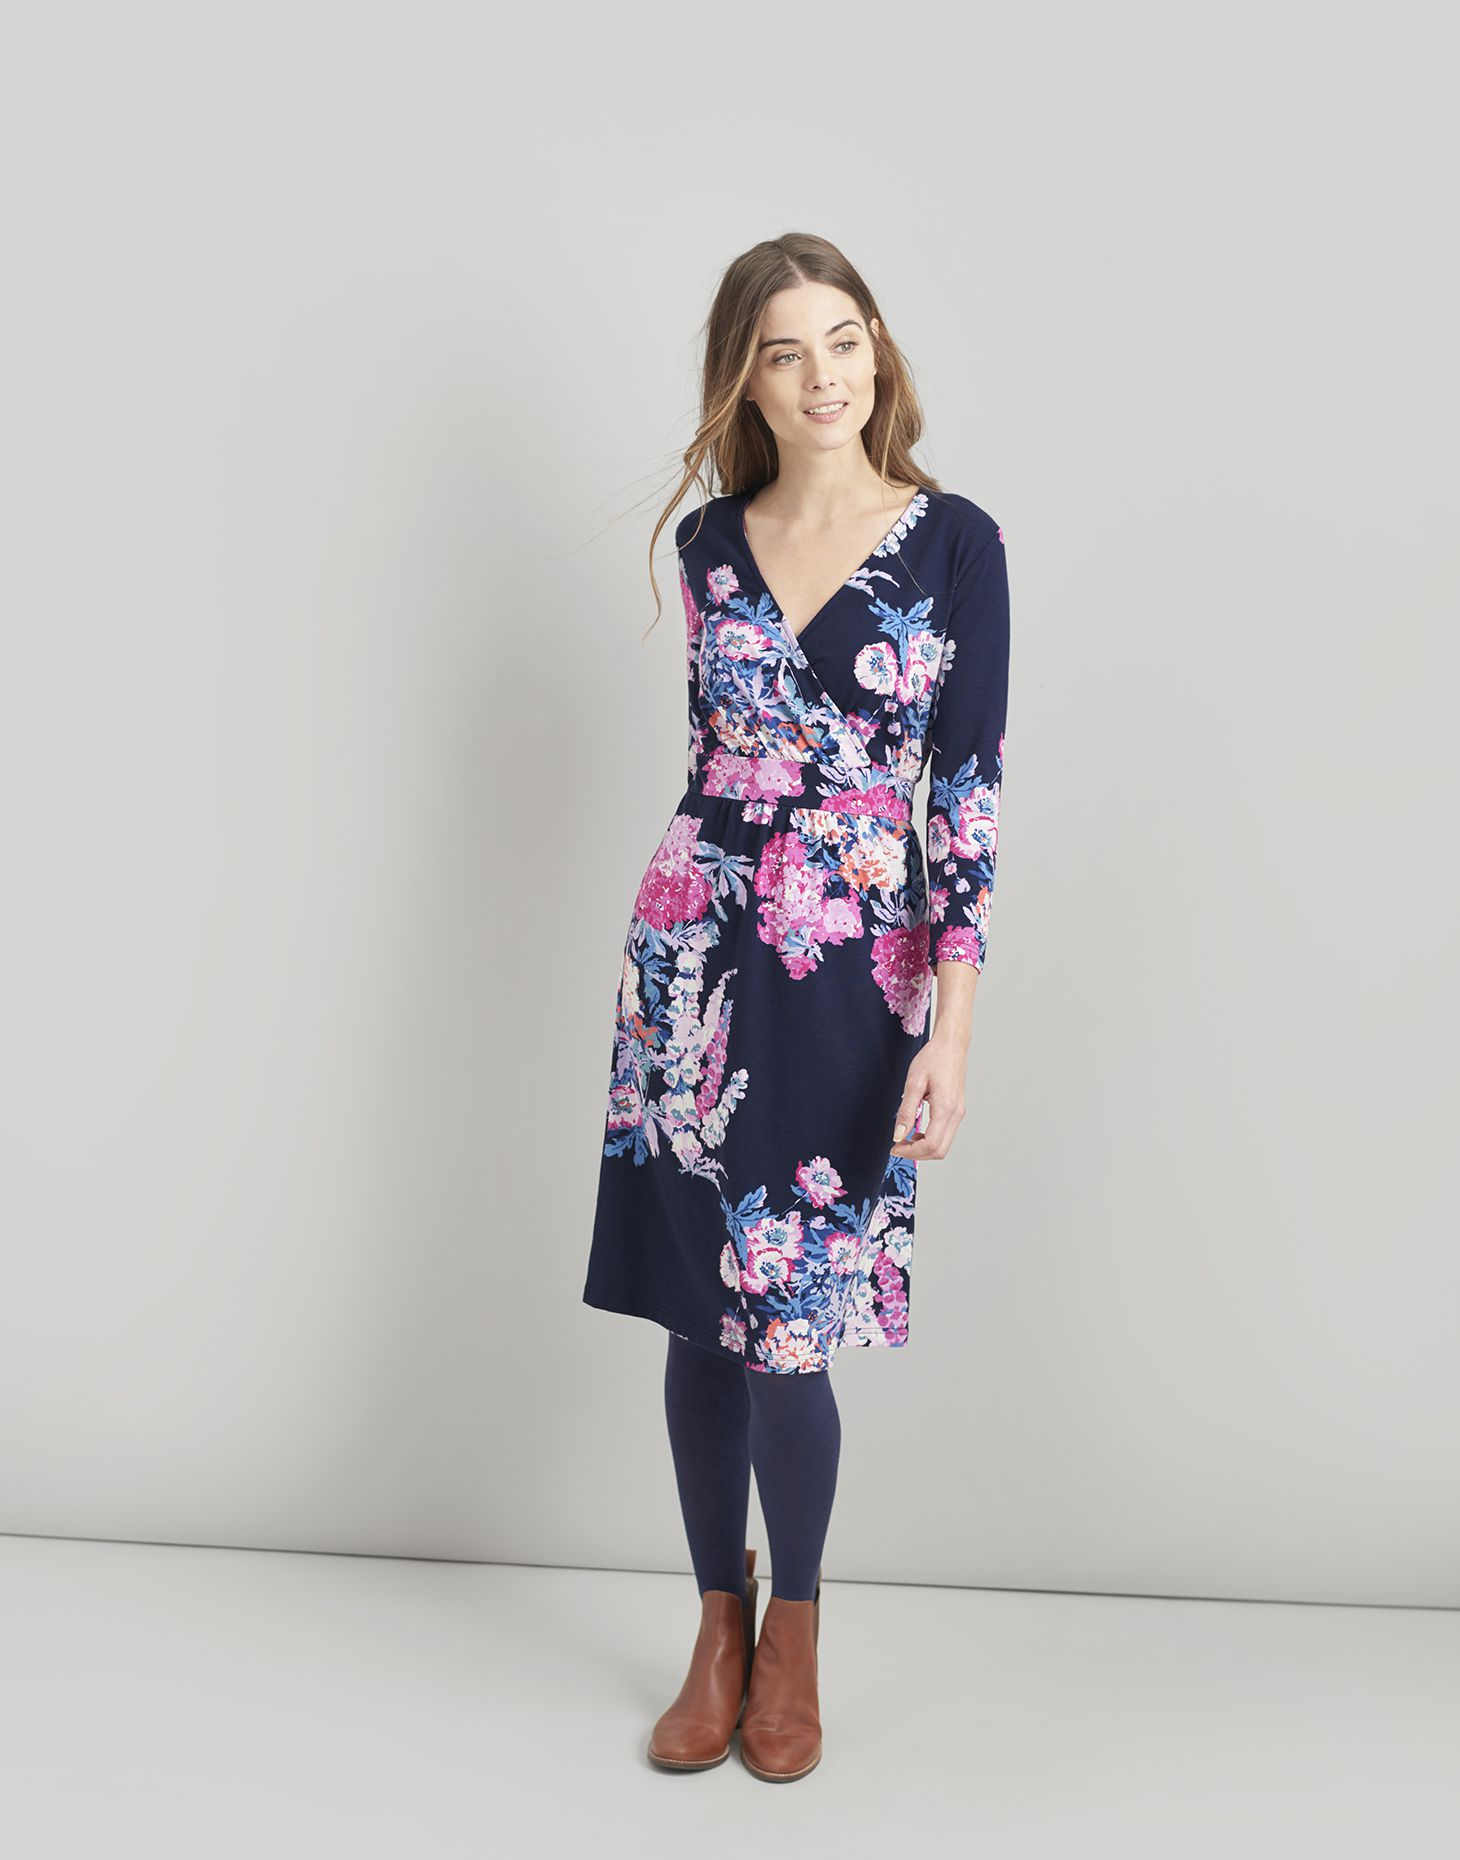 eb8a15dd49 Jude NAVY FLORAL Wrap Dress With 3 4 Sleeve